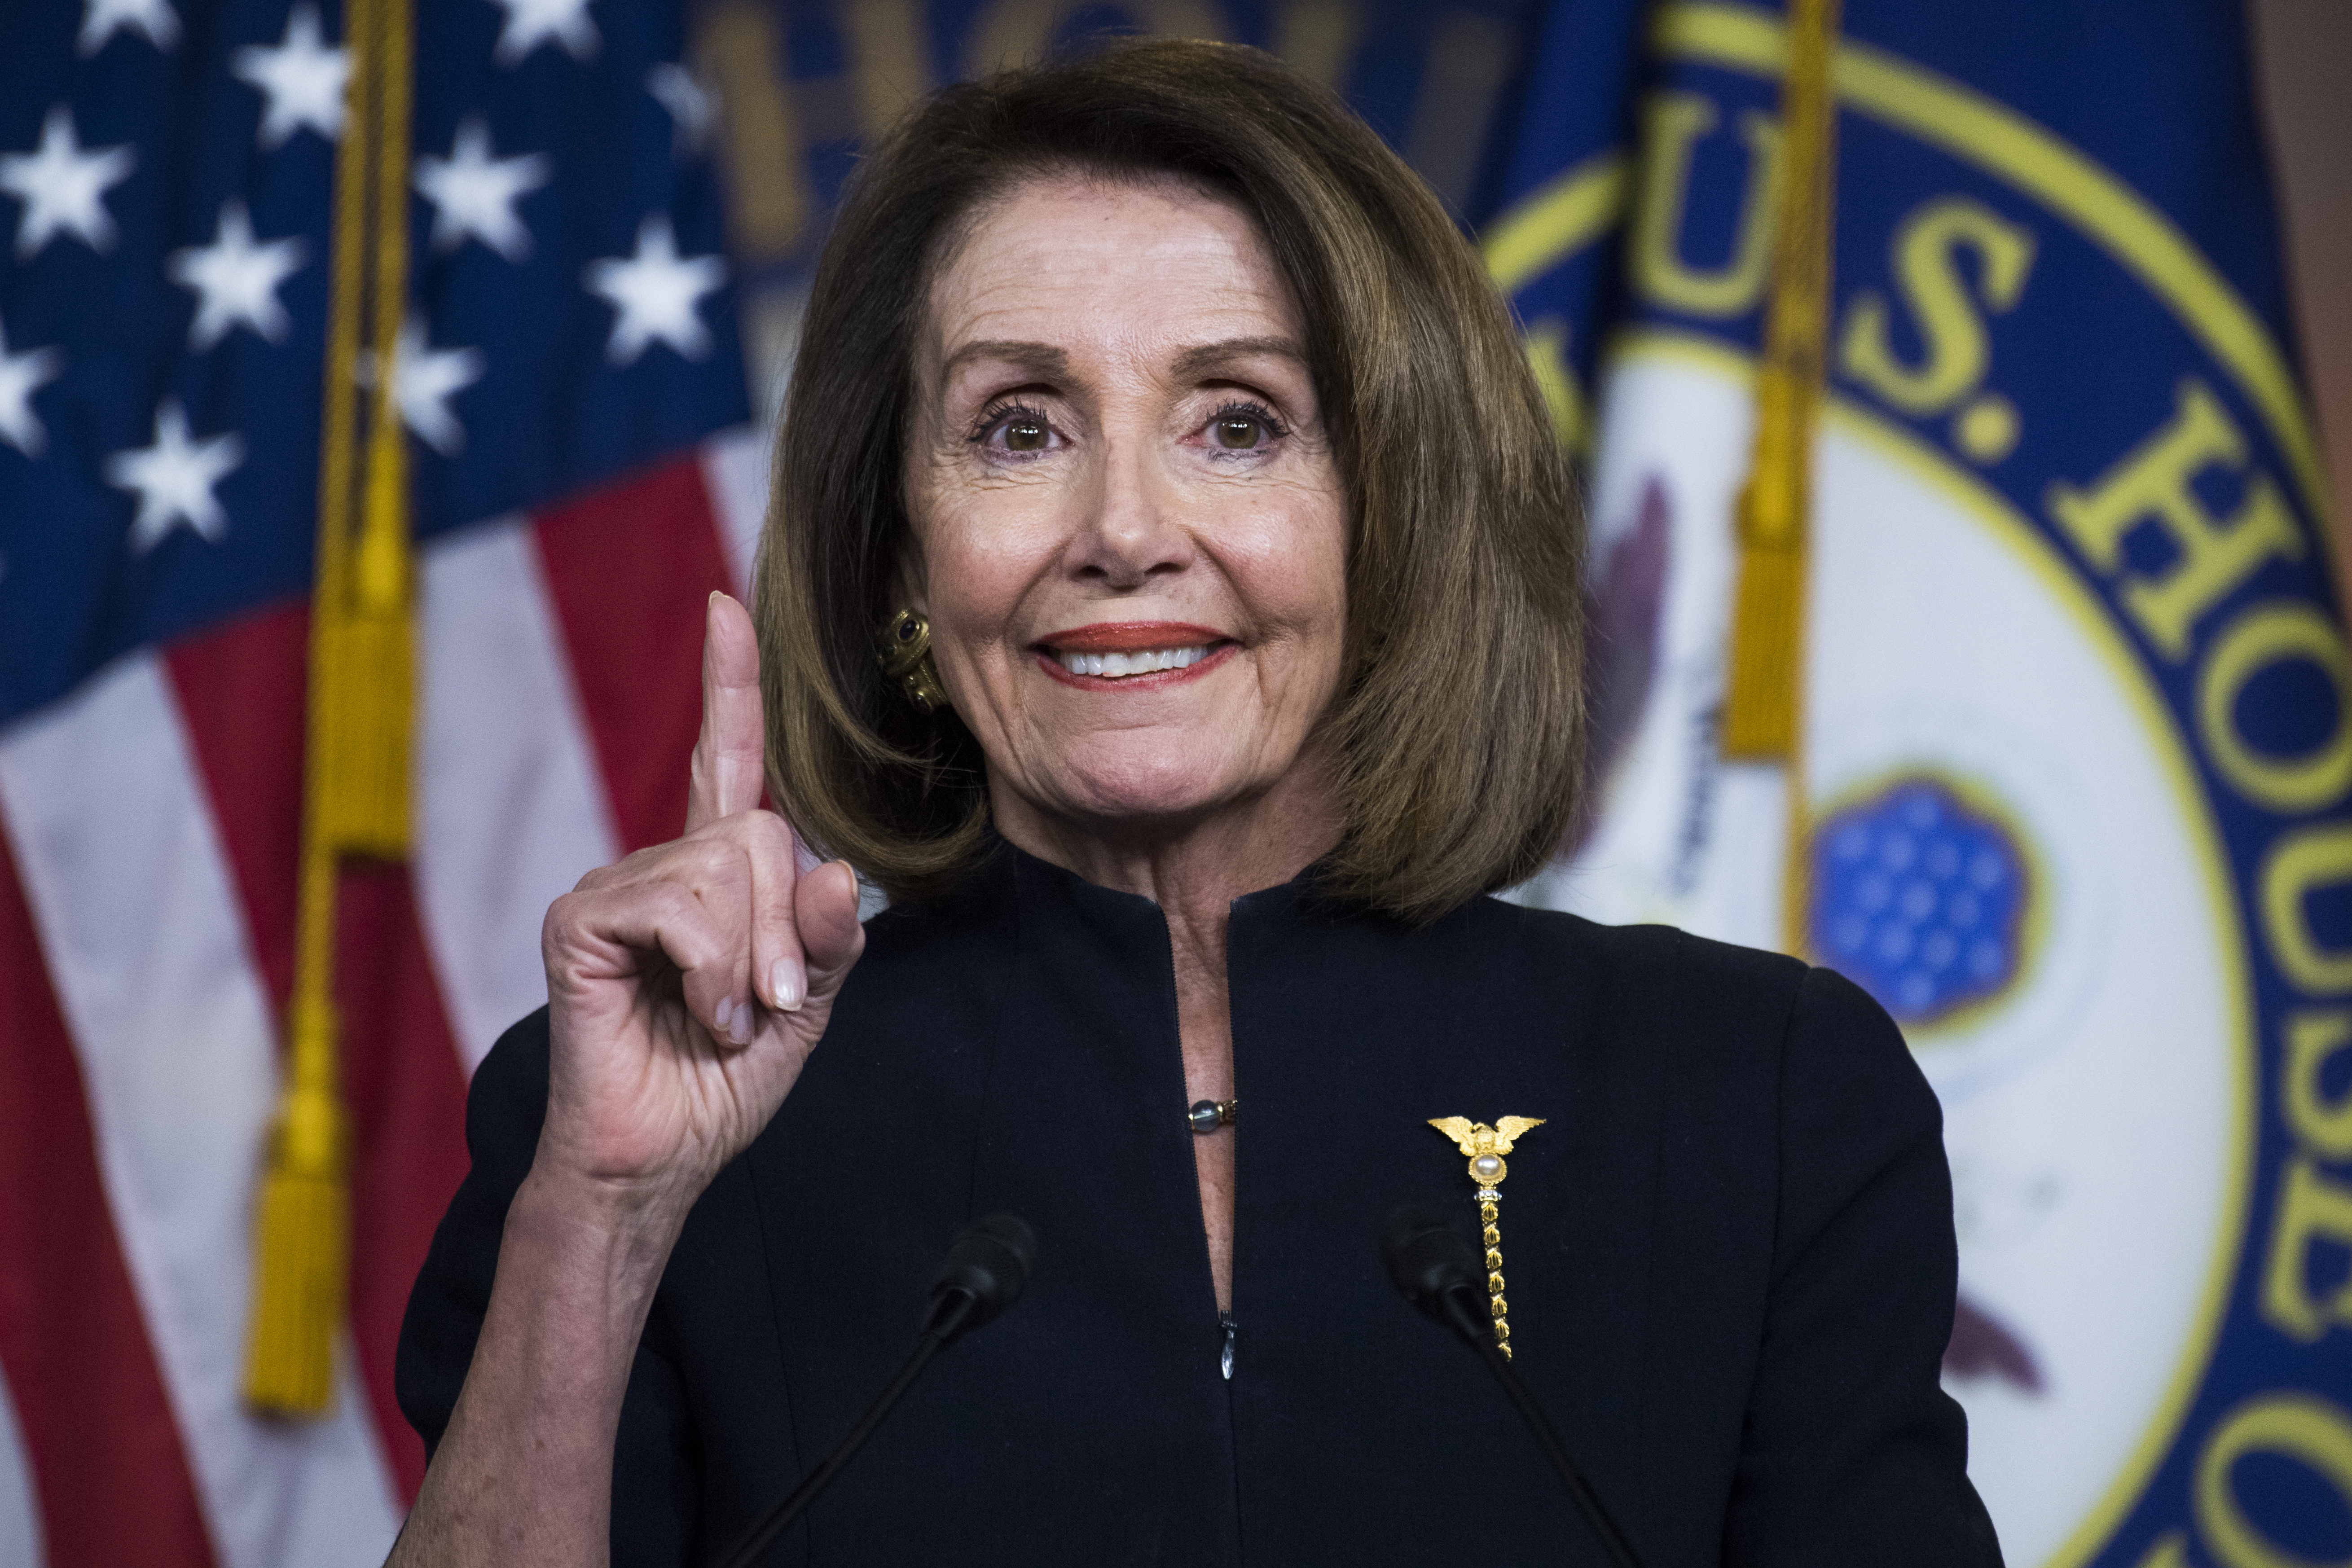 UNITED STATES - FEBRUARY 14: Speaker Nancy Pelosi, D-Calif., conducts her weekly news conference in the Capitol Visitor Center where she fielded questions about the bipartisan government funding bill on Thursday, February 14, 2019. (Photo By Tom Williams/CQ Roll Call)